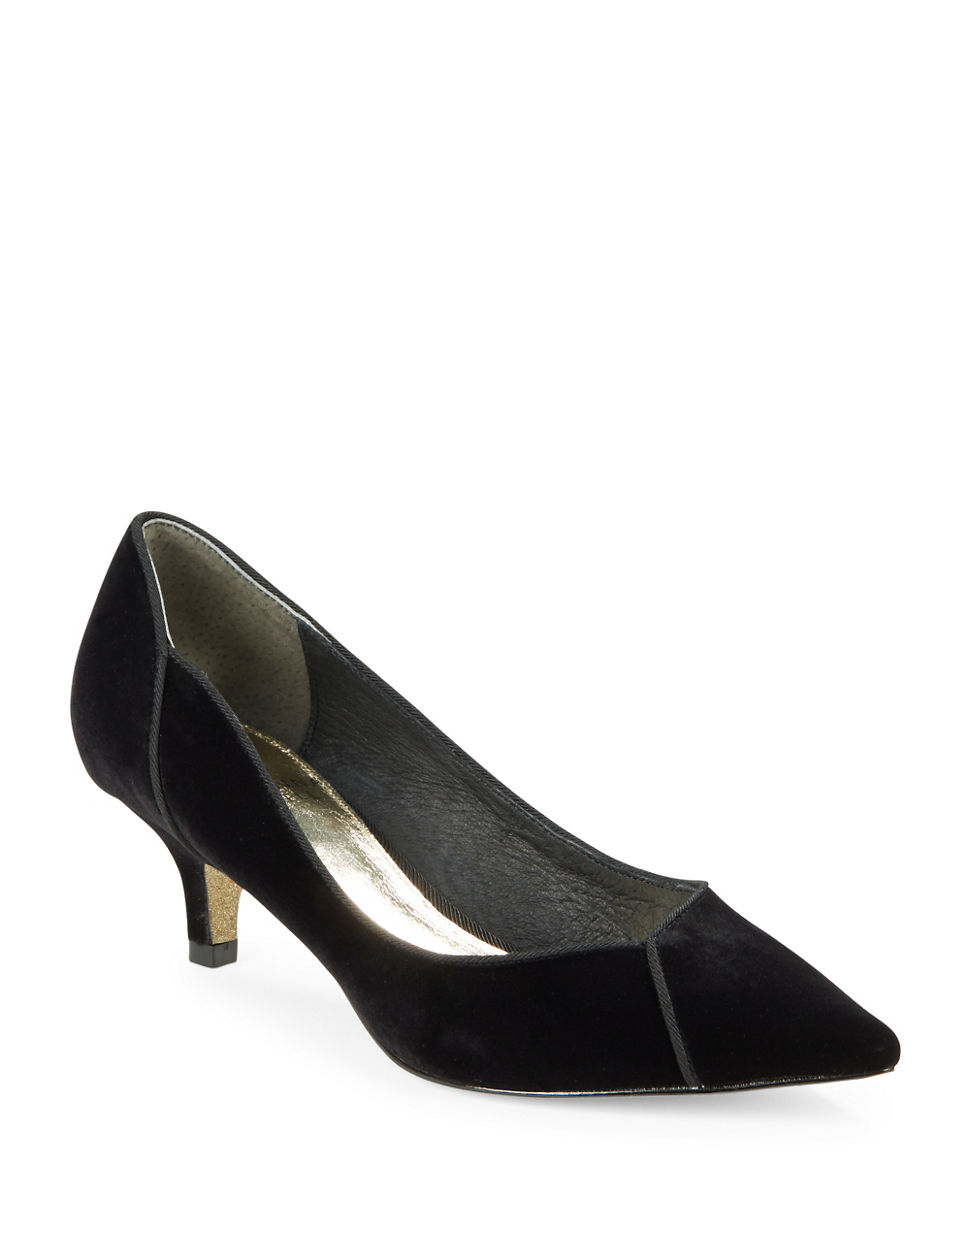 Free shipping on Adrianna Papell shoes for women at yiiv5zz5.gq Shop for pumps and sandals. Totally free shipping and returns.